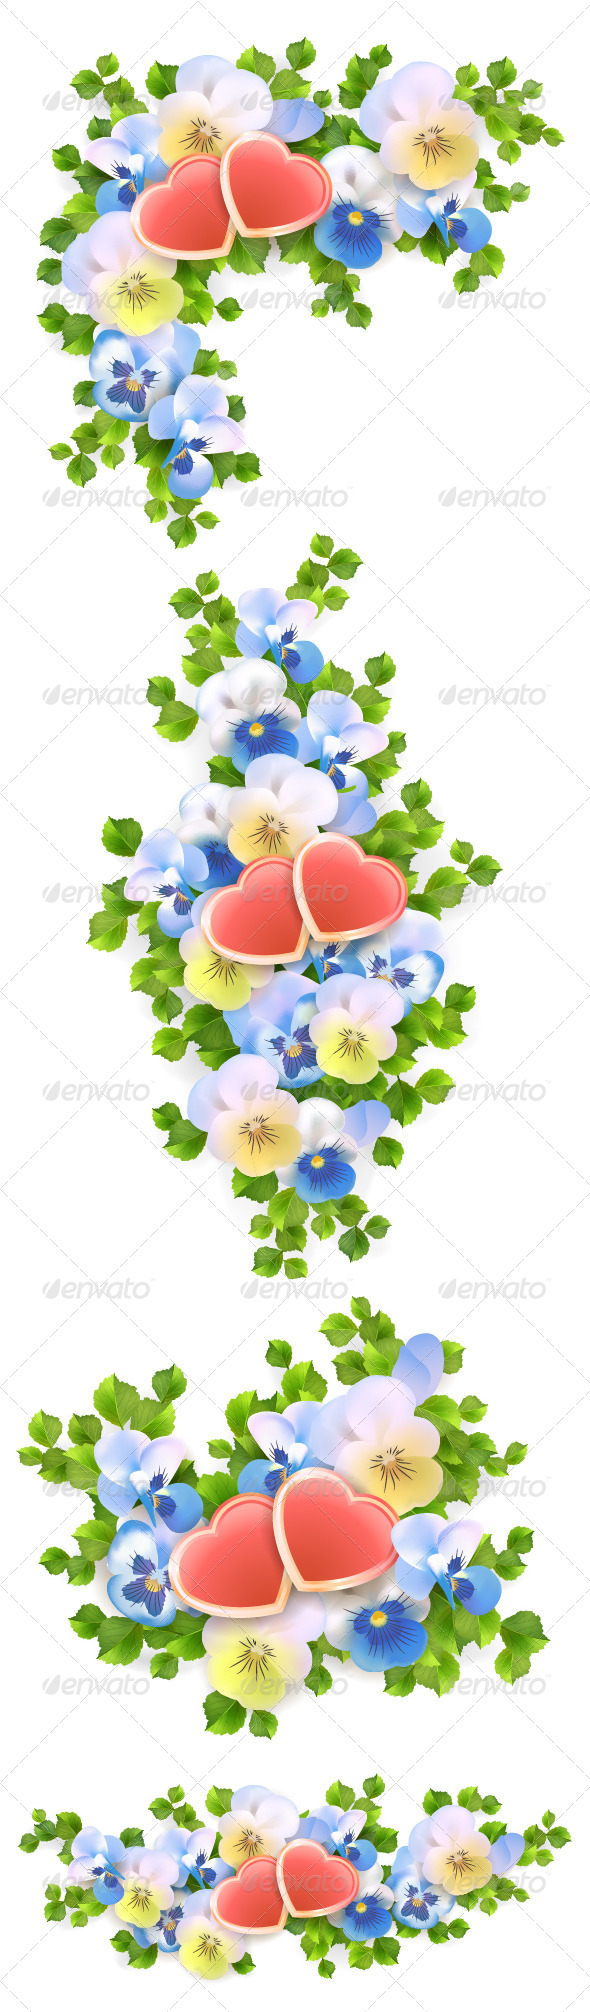 GraphicRiver Flowers Bouquet Hearts on White Background 6552661